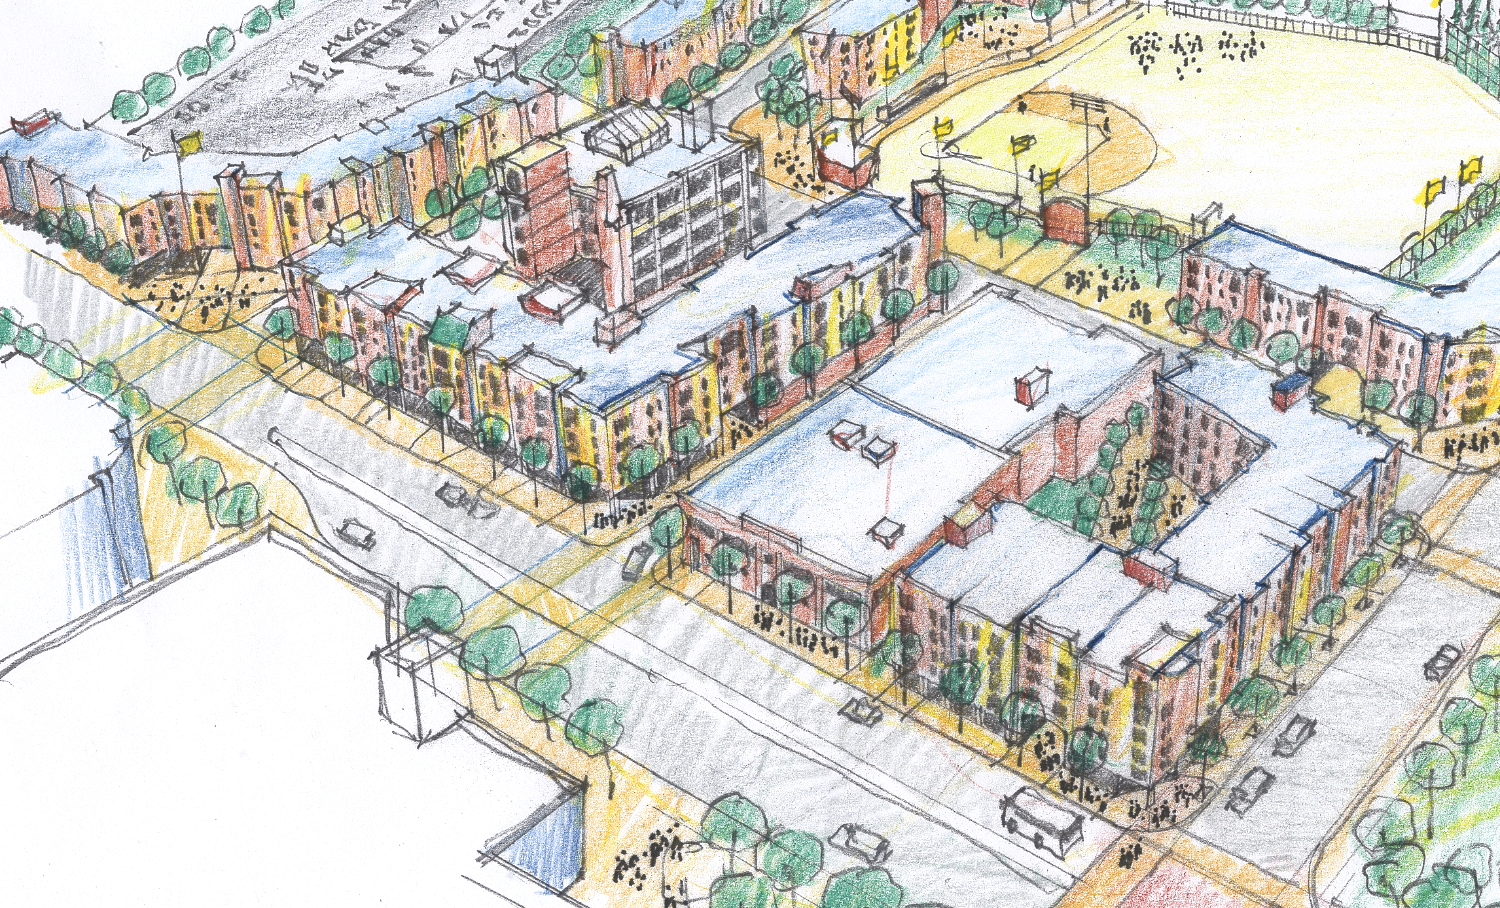 PROPOSED NORTH CAMPUS NEIGHBORHOOD